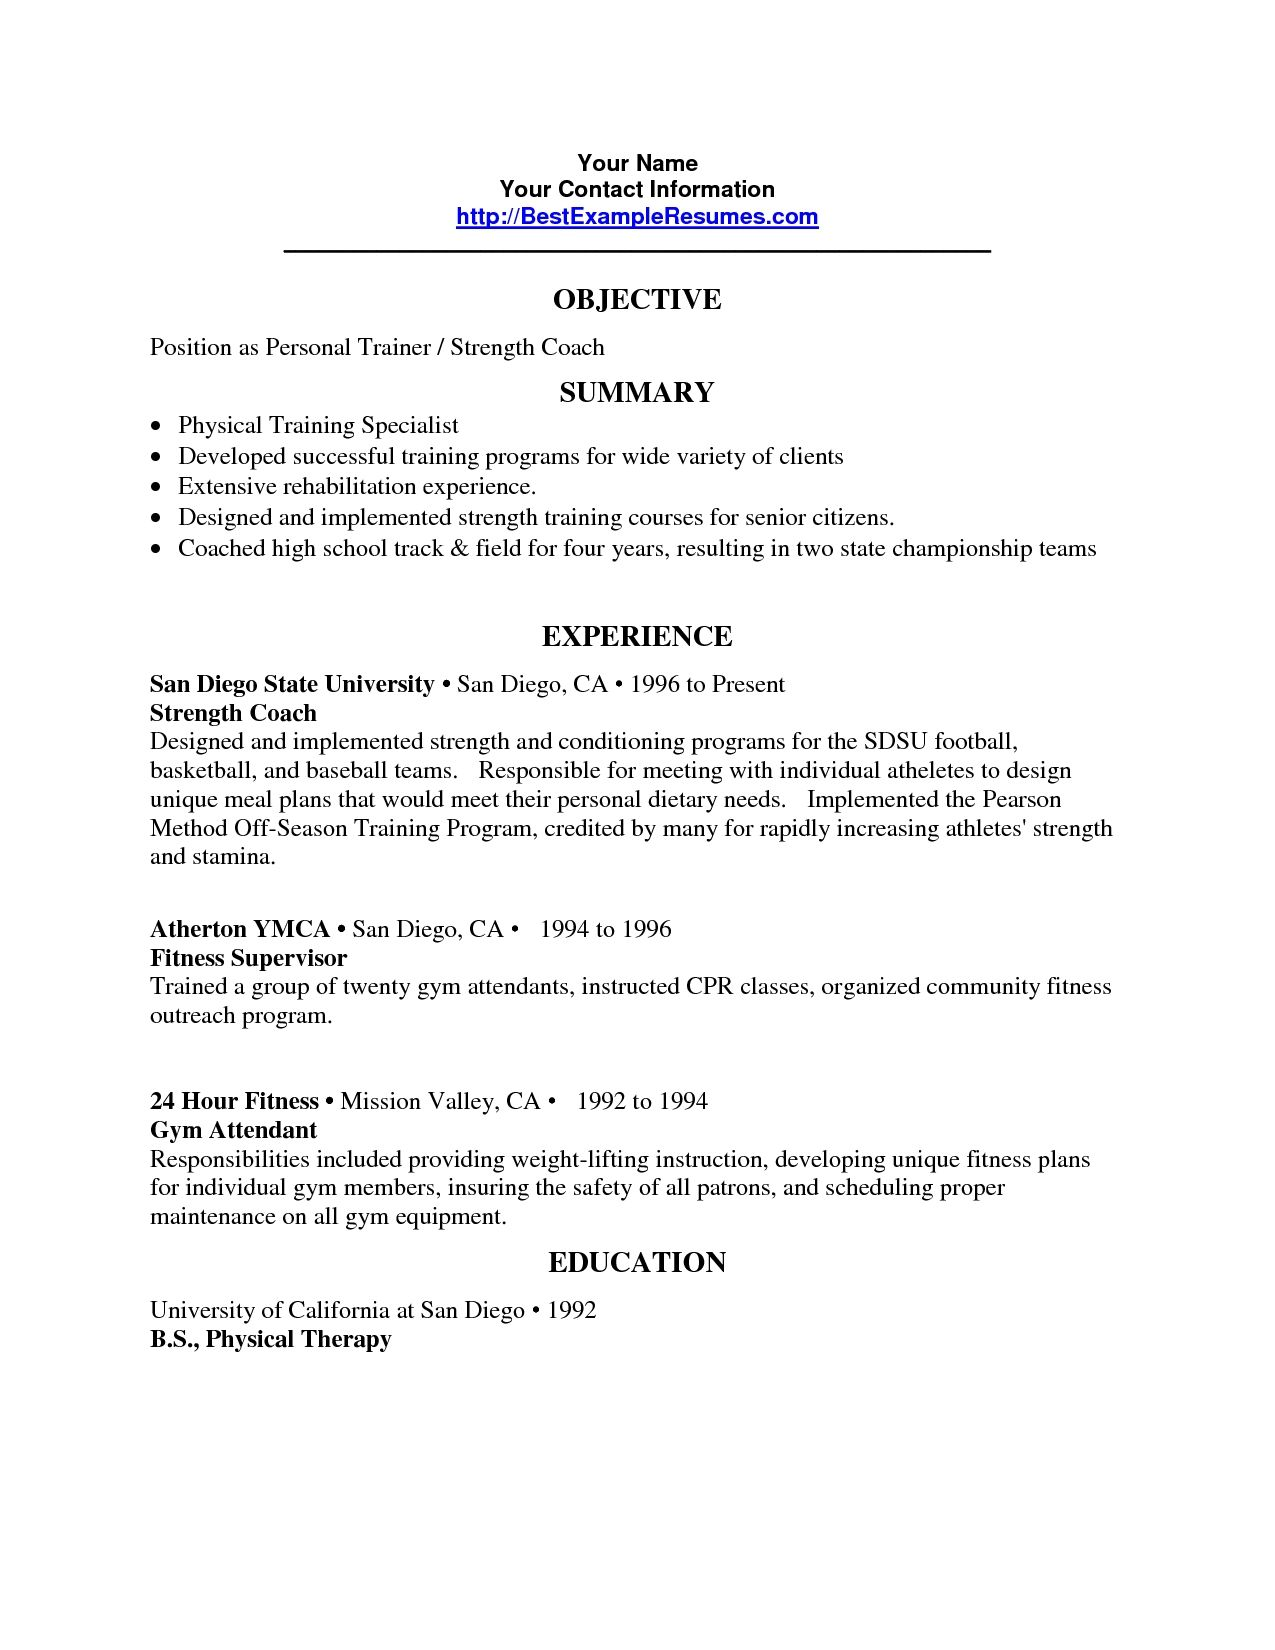 Personal Trainer Resume Objective Trainer Resume Sample Gallery ...